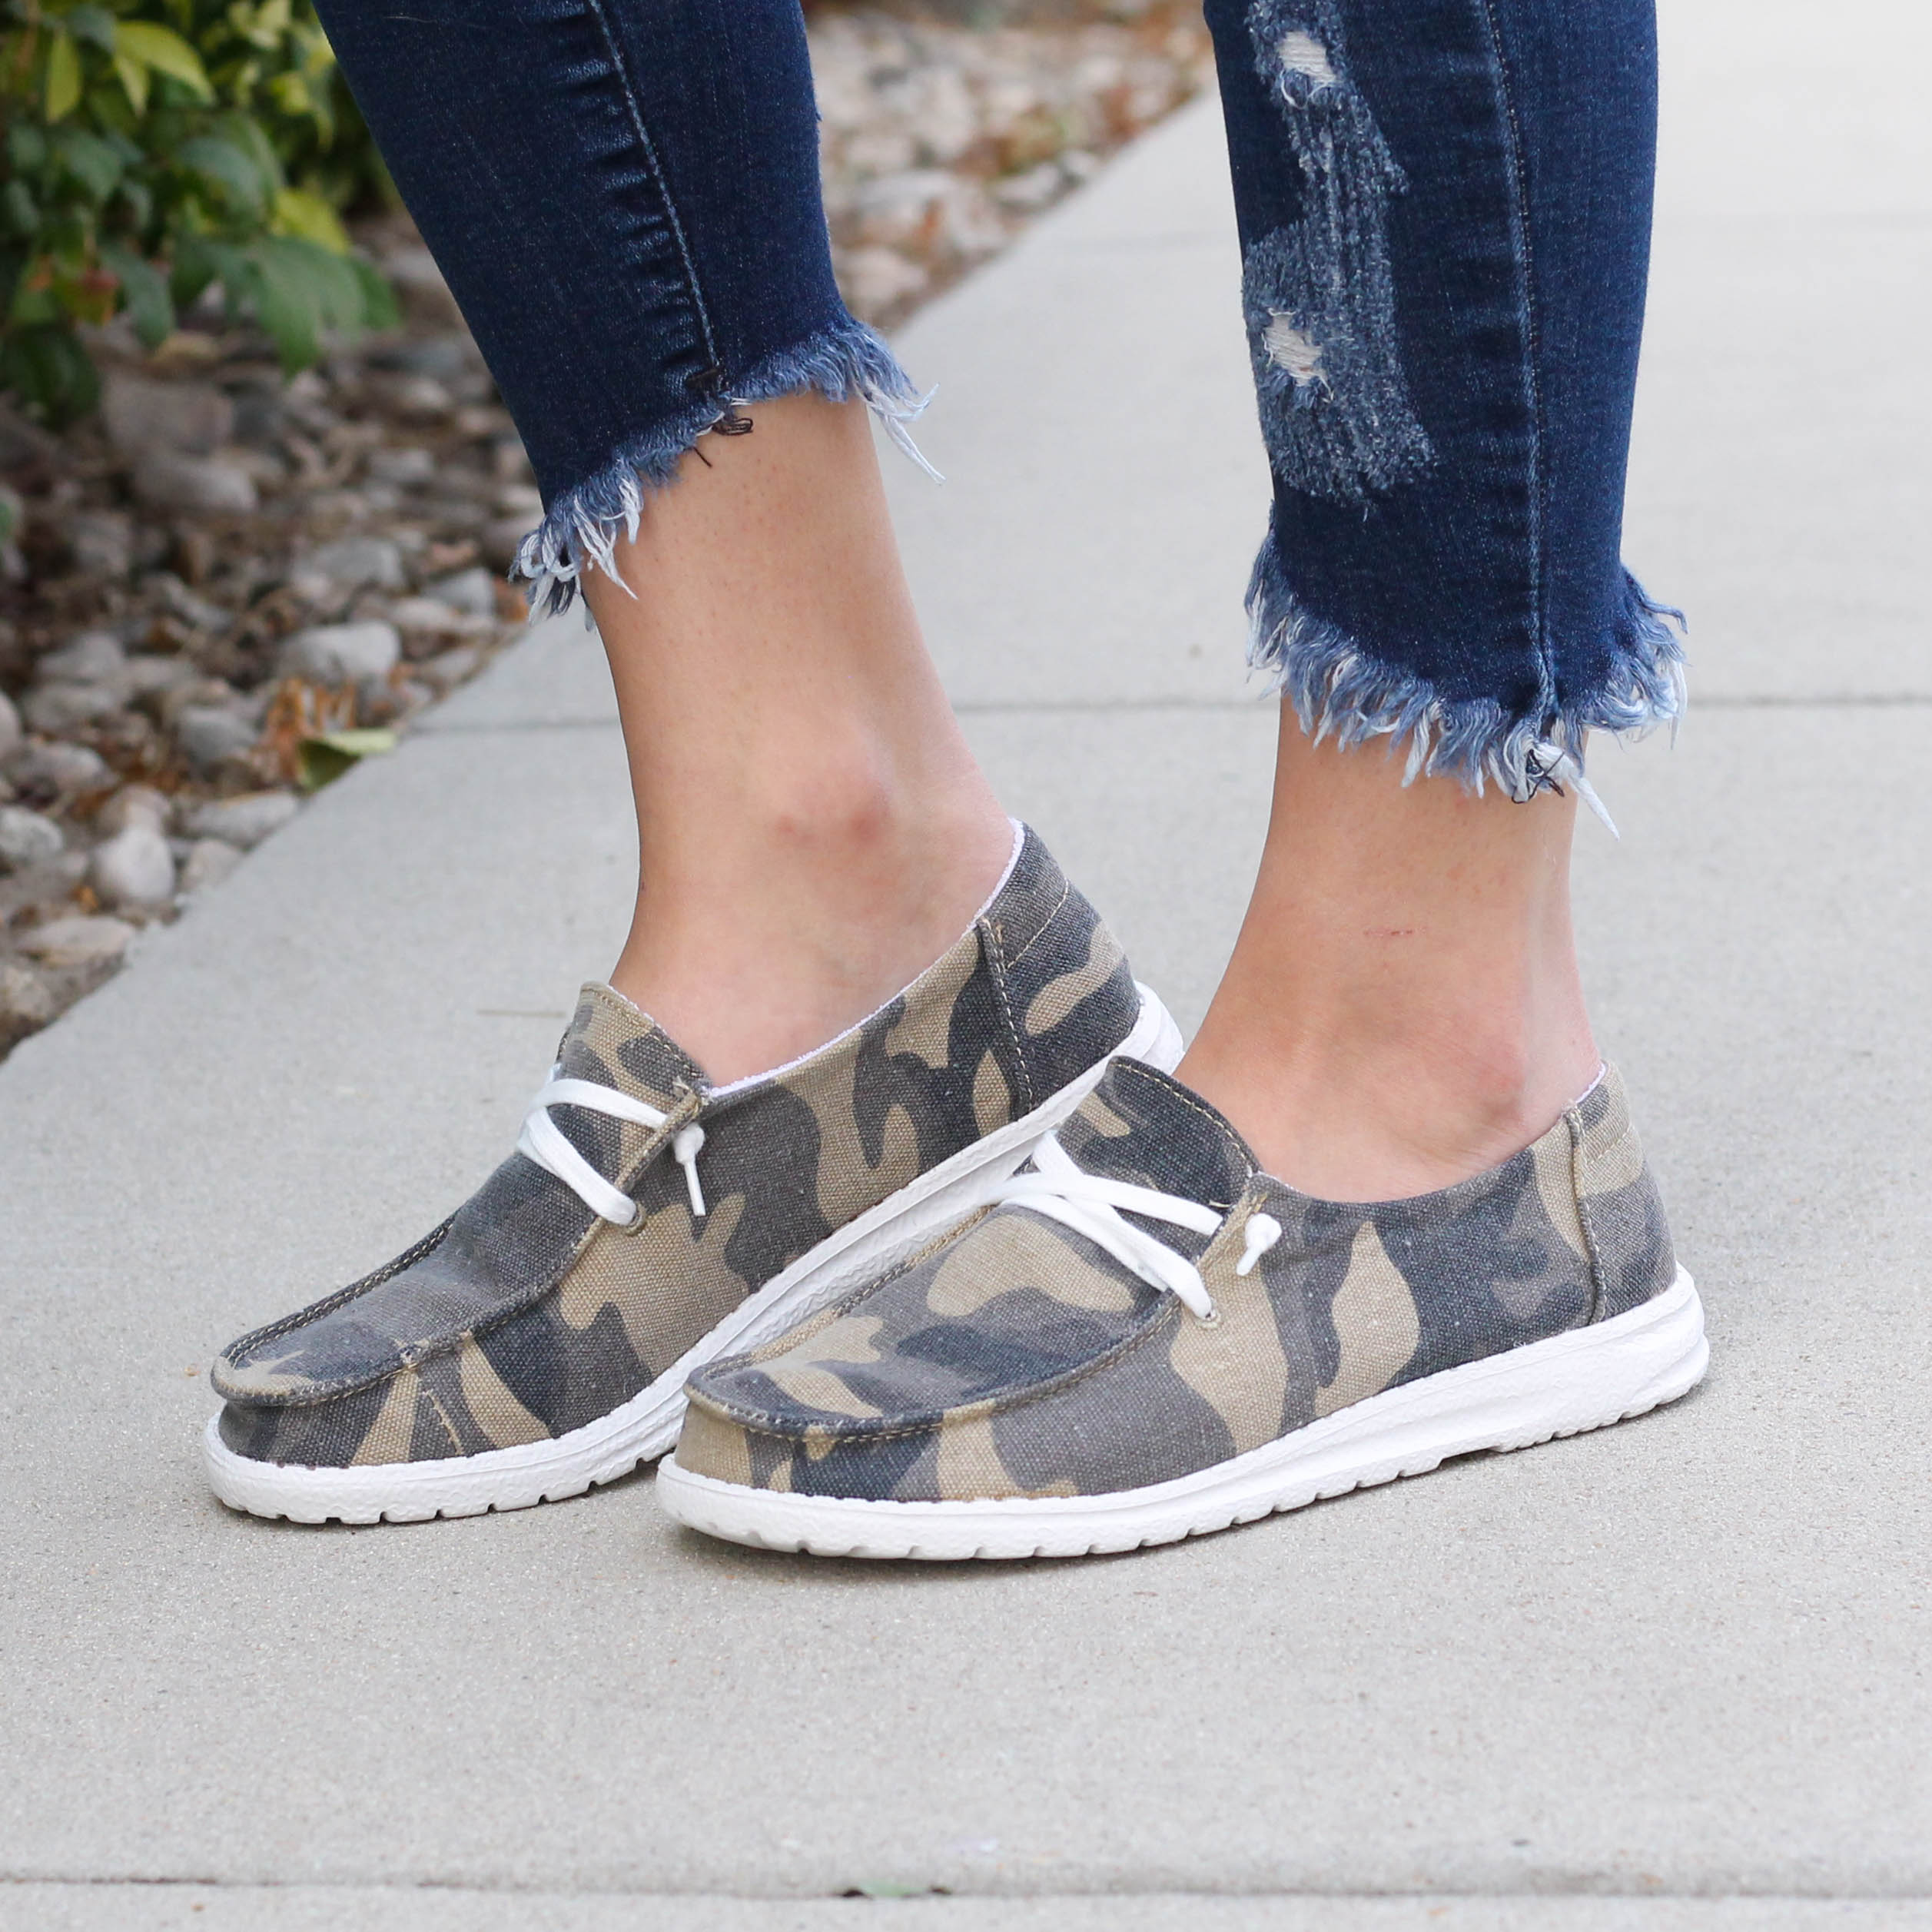 Very G - Camo Sneakers